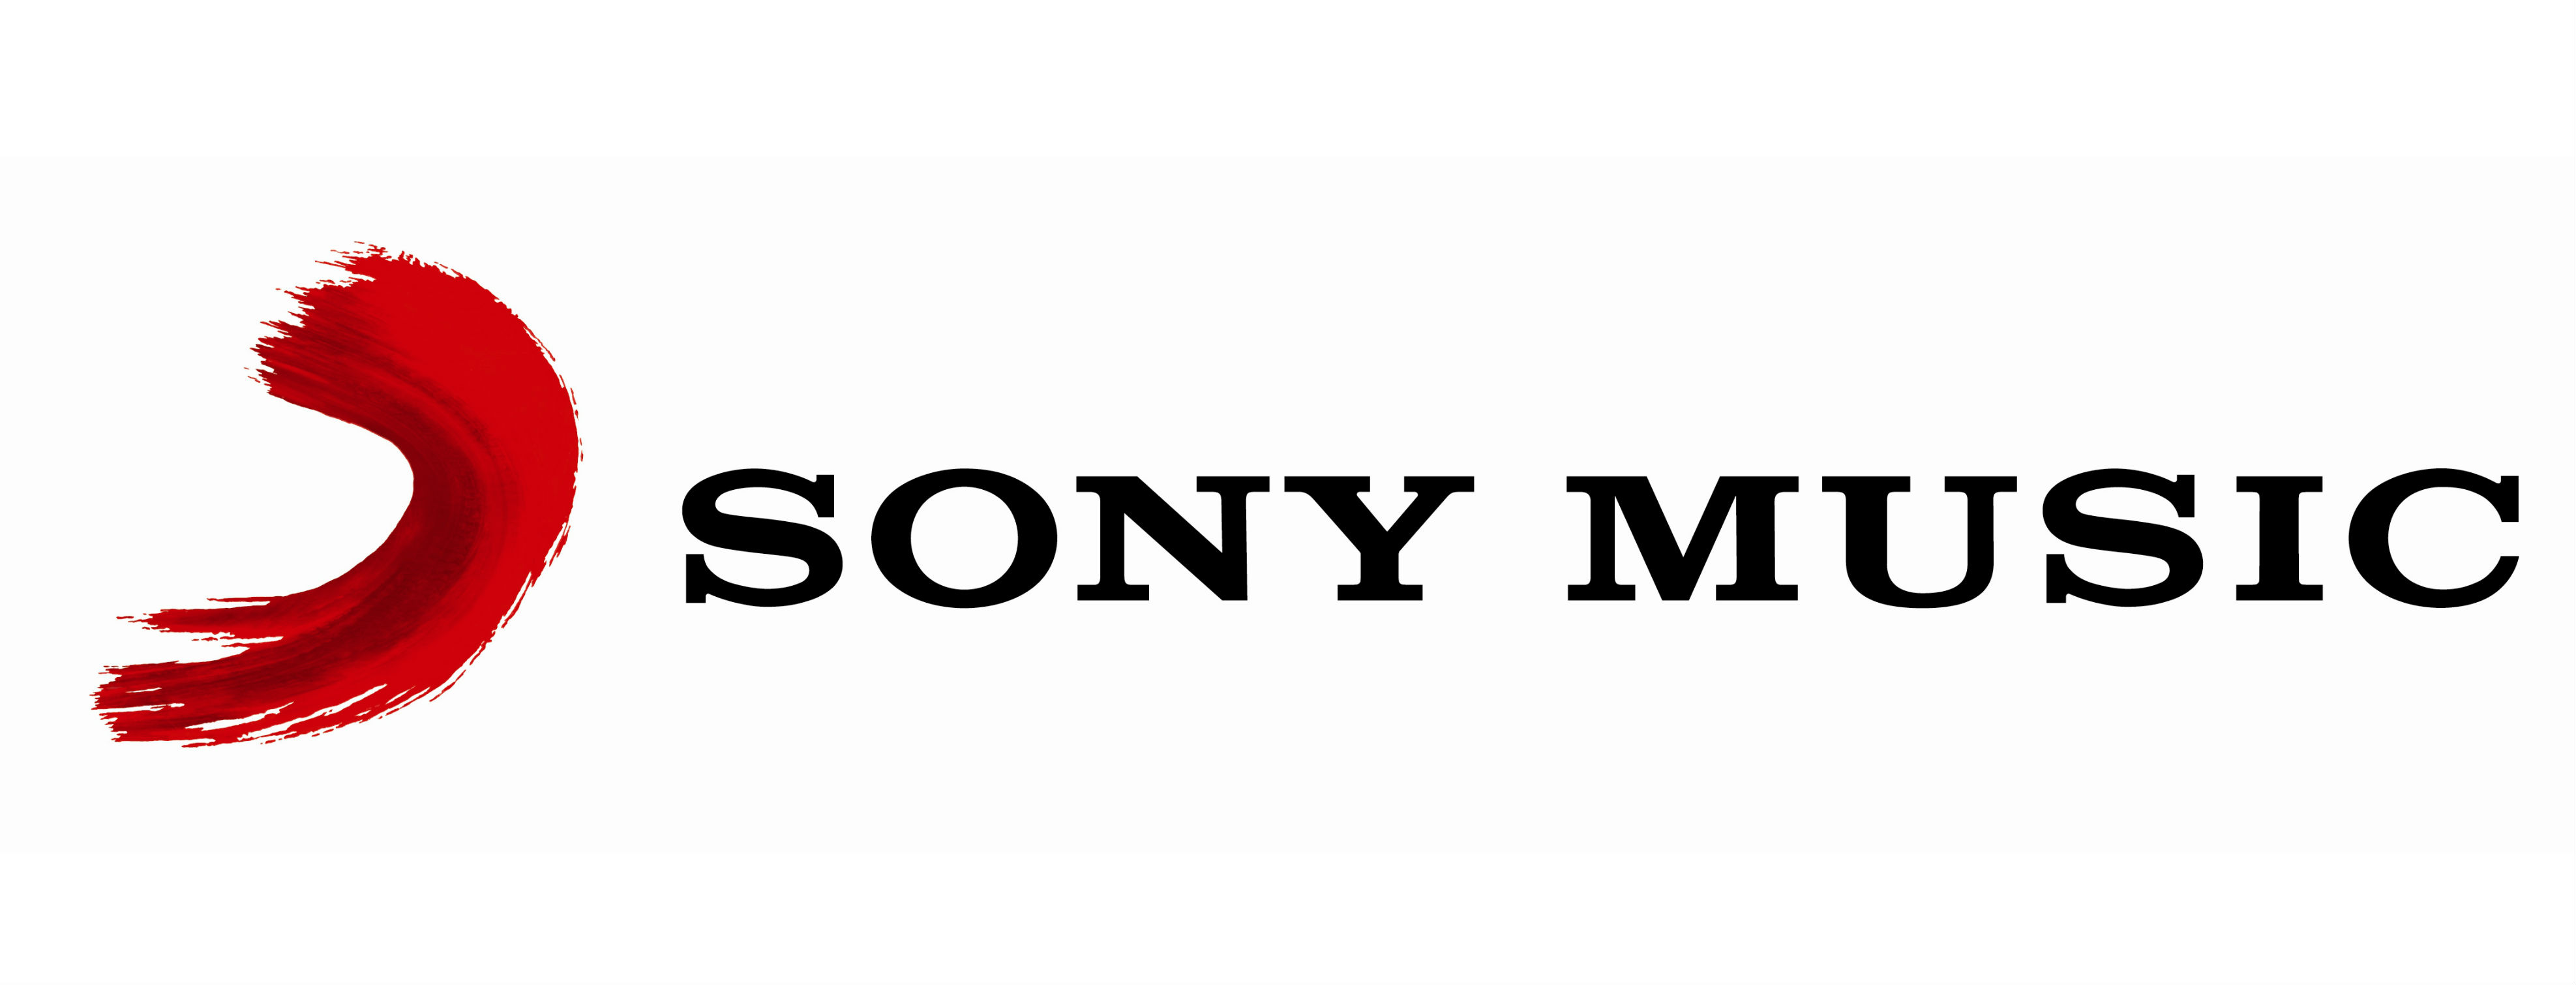 Sony Music launches dance label with Tencent Music Cbs News Logo Vector